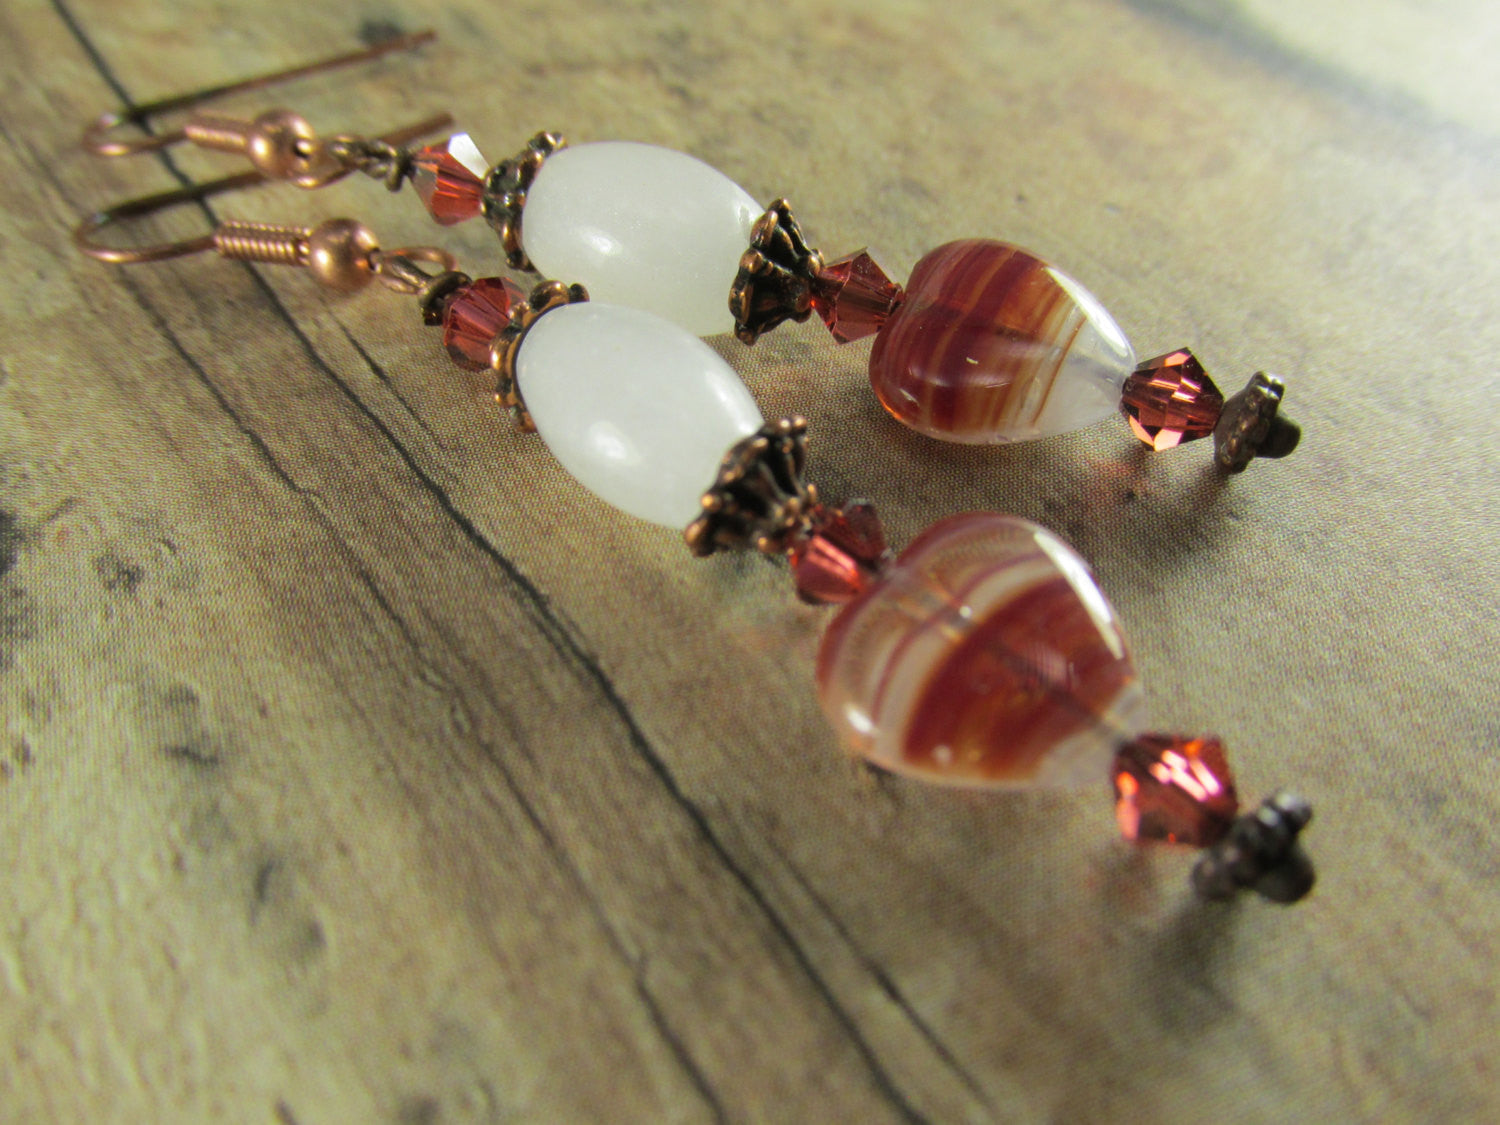 White Quartz and Brick Red and White Heart Earrings with Swarovski Crystal accents on Copper - Odyssey Creations